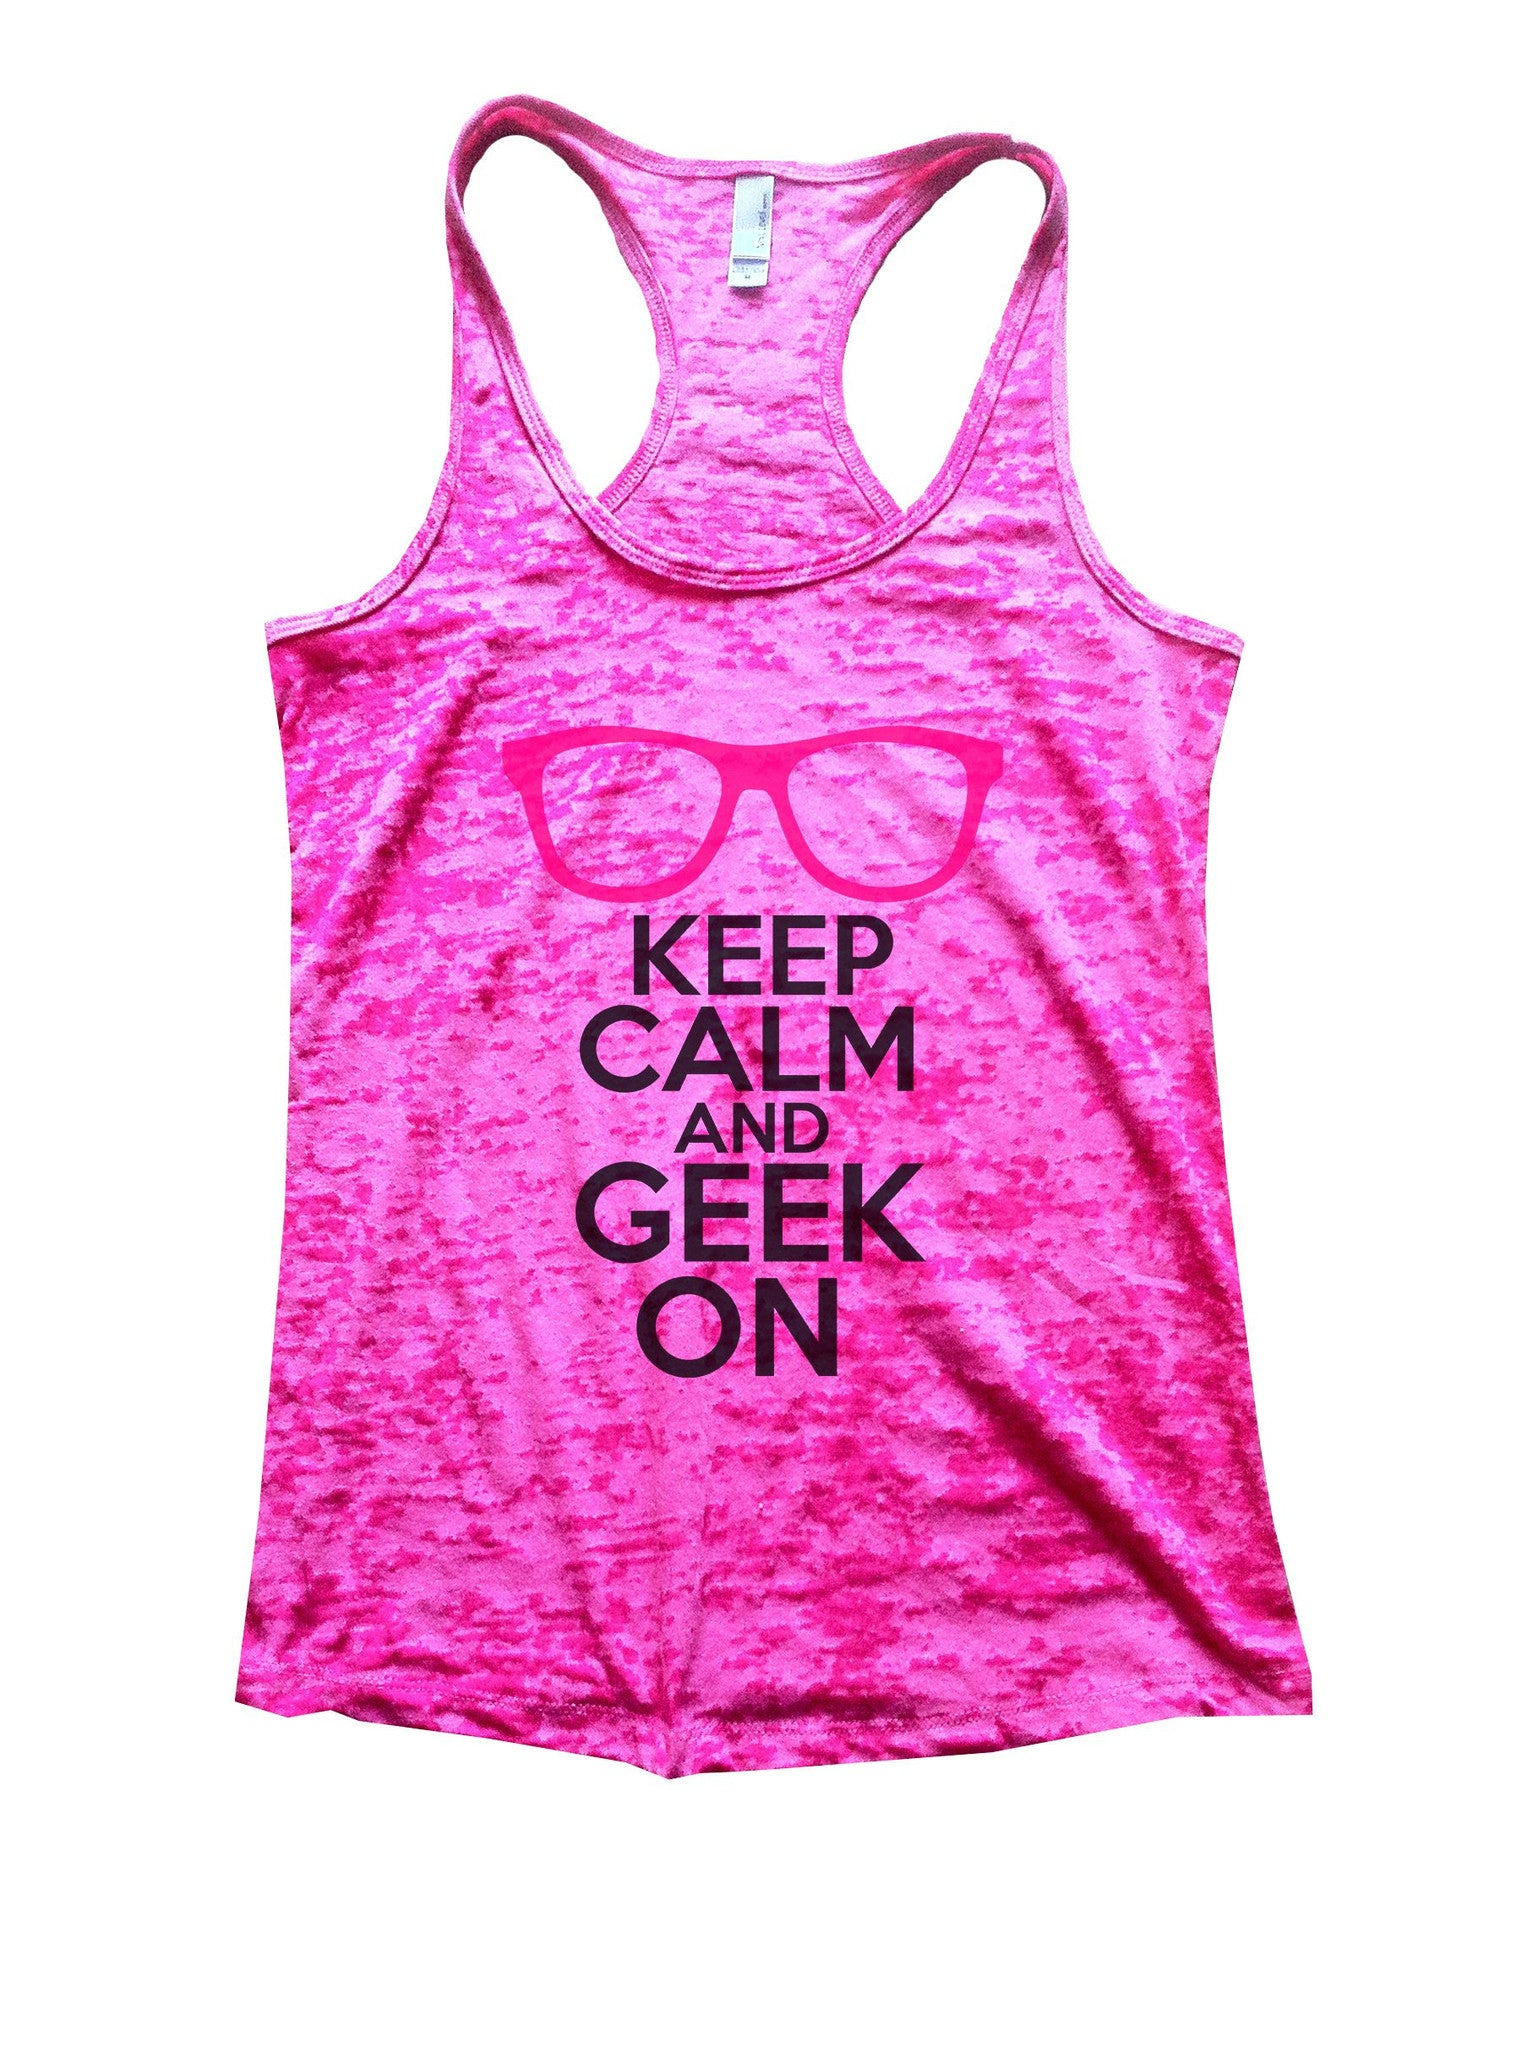 Keep Calm And Geek On Burnout Tank Top By BurnoutTankTops.com - 1121 - Funny Shirts Tank Tops Burnouts and Triblends  - 4